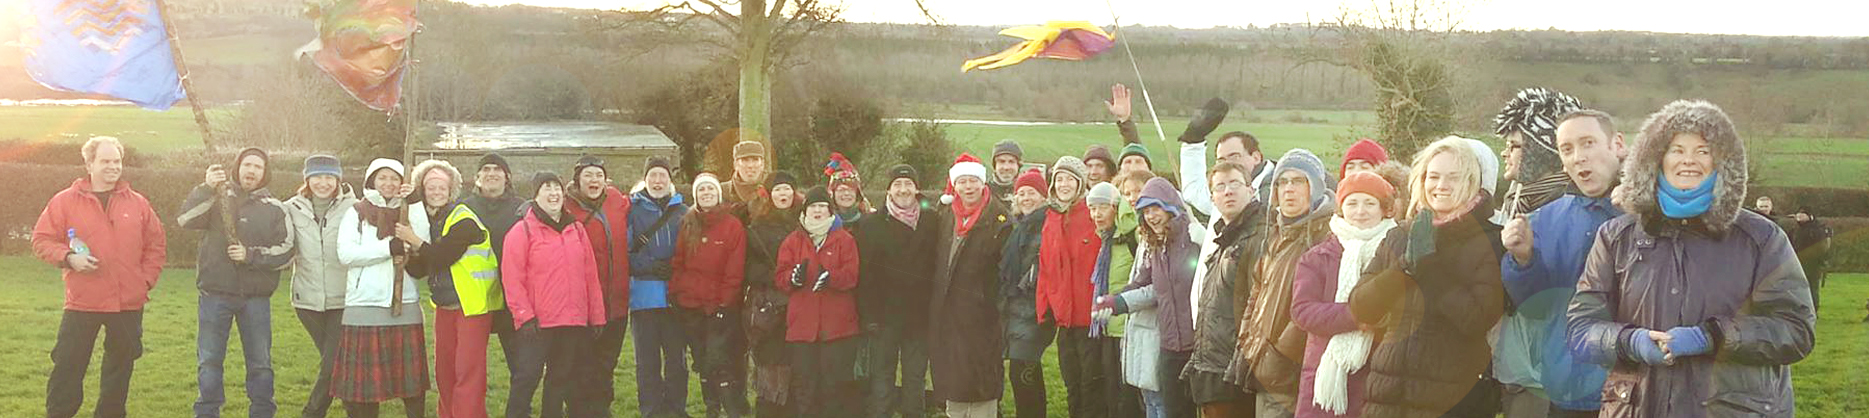 WinterSolstice.ie  2013 Group Photo at Newgrange Solstice Sunrise